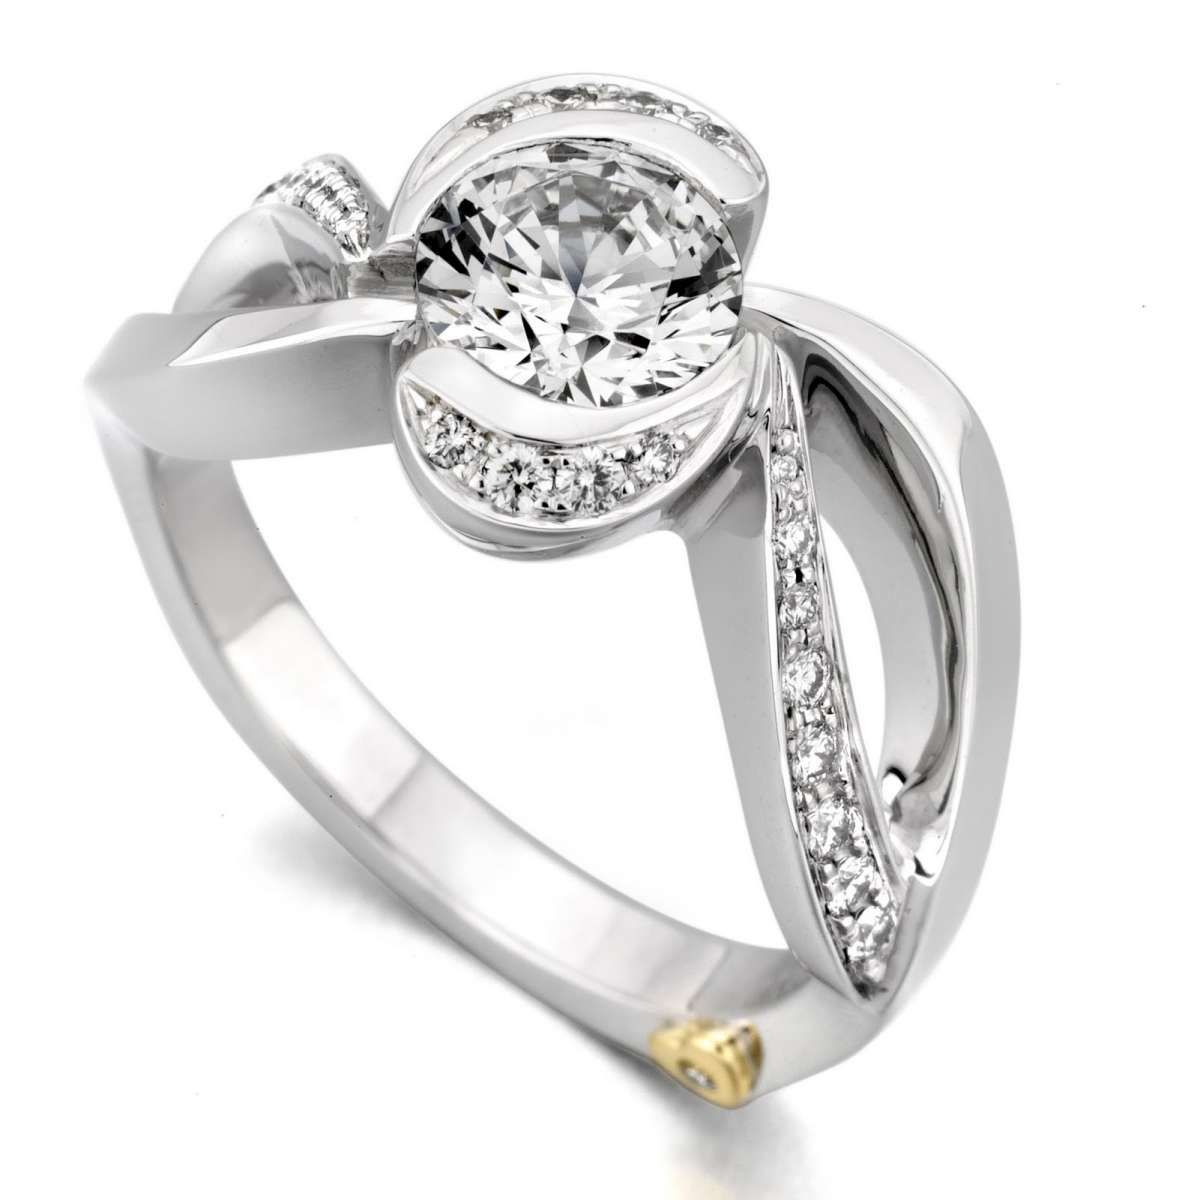 Top 17 Engagement Ring Design Examples | Engagements, Ring and ...